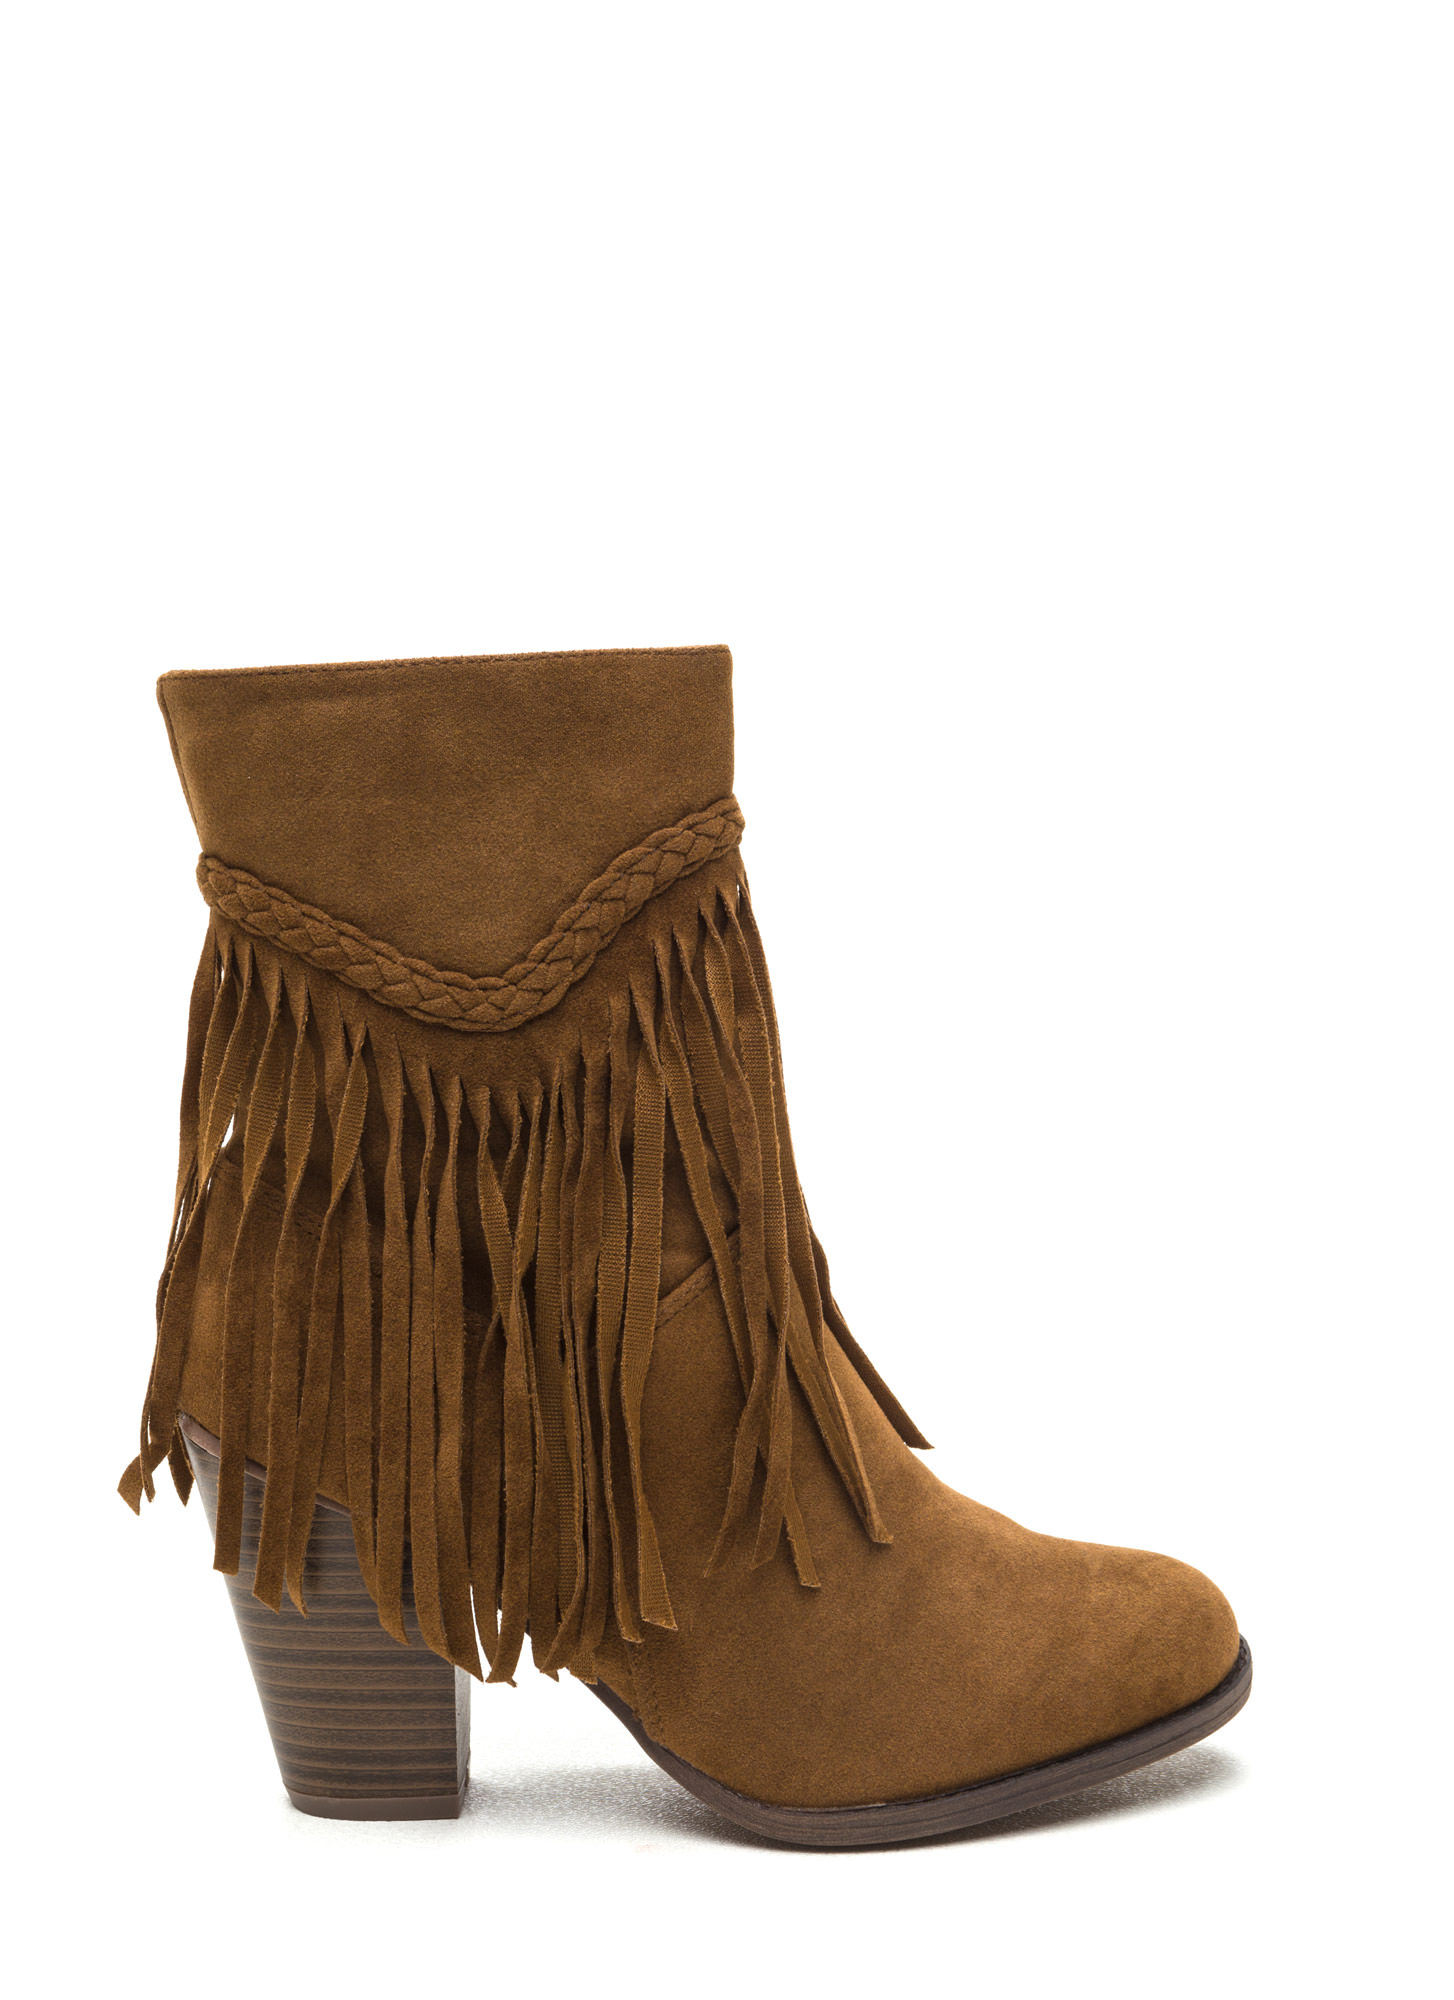 Fringe Value Faux Suede Booties TAN